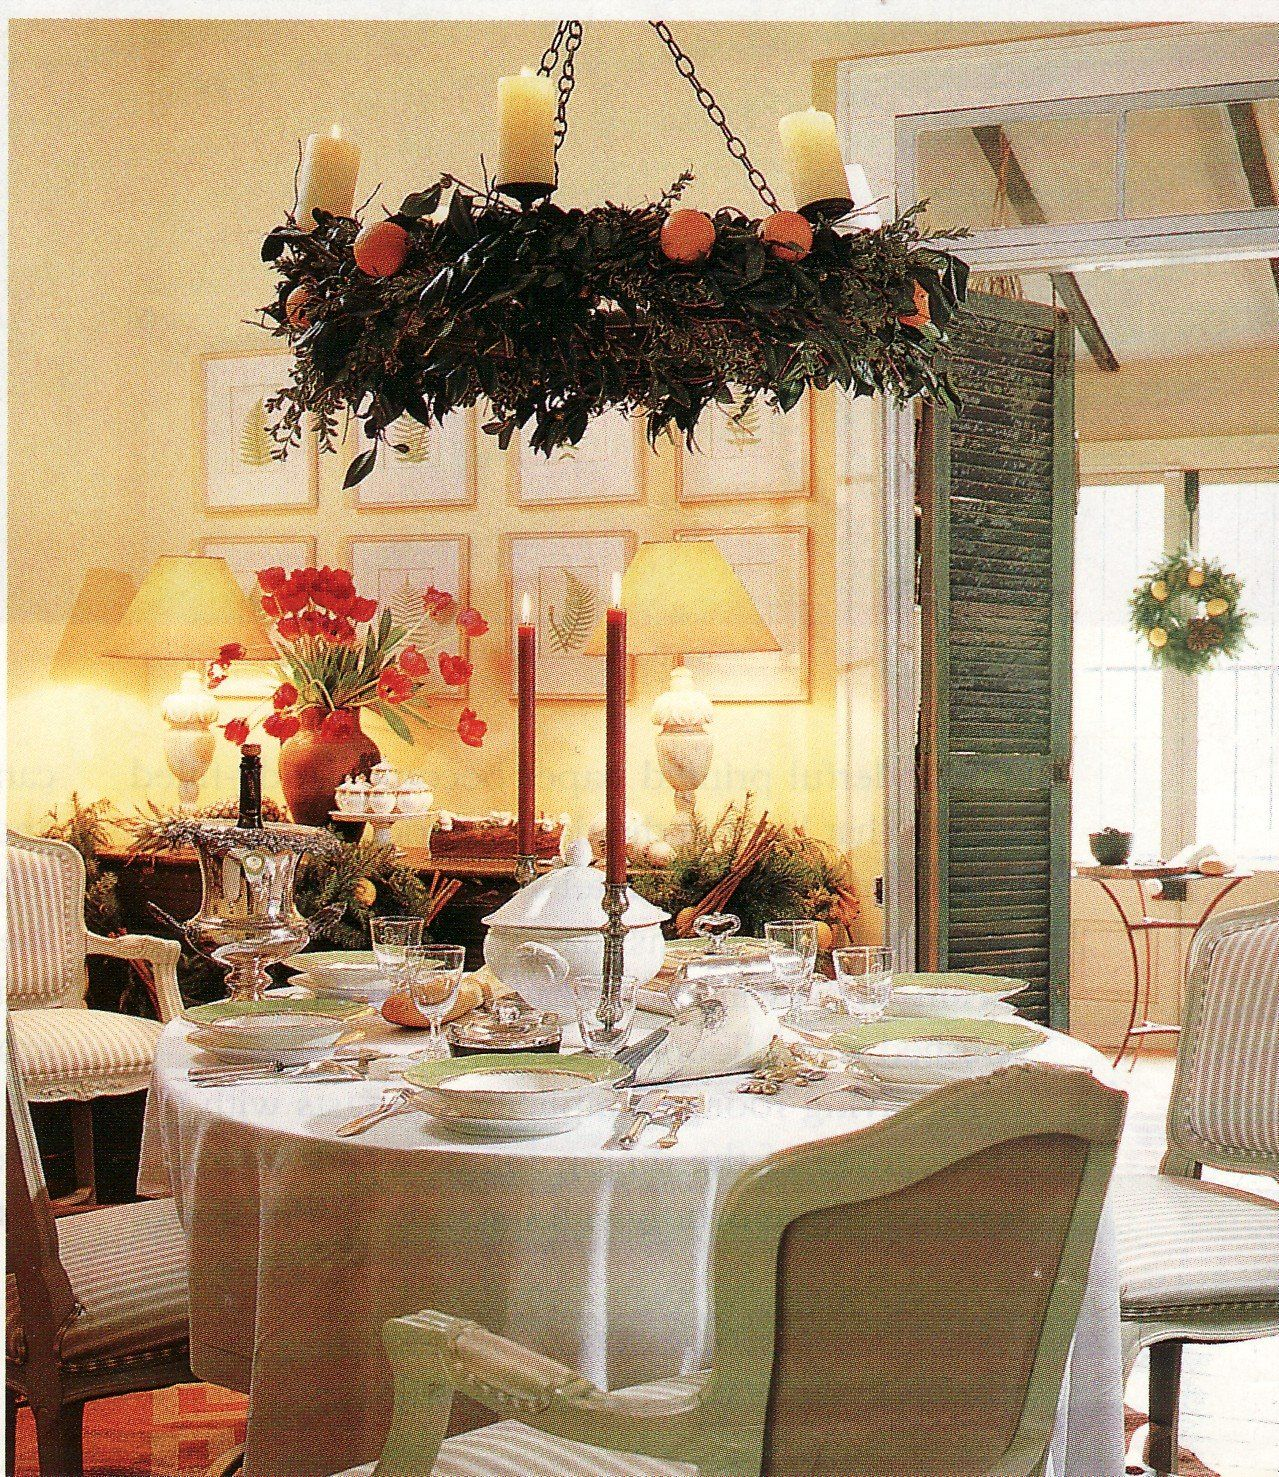 K Moody southern accents -3 | Dining Room Ideas | Pinterest ...